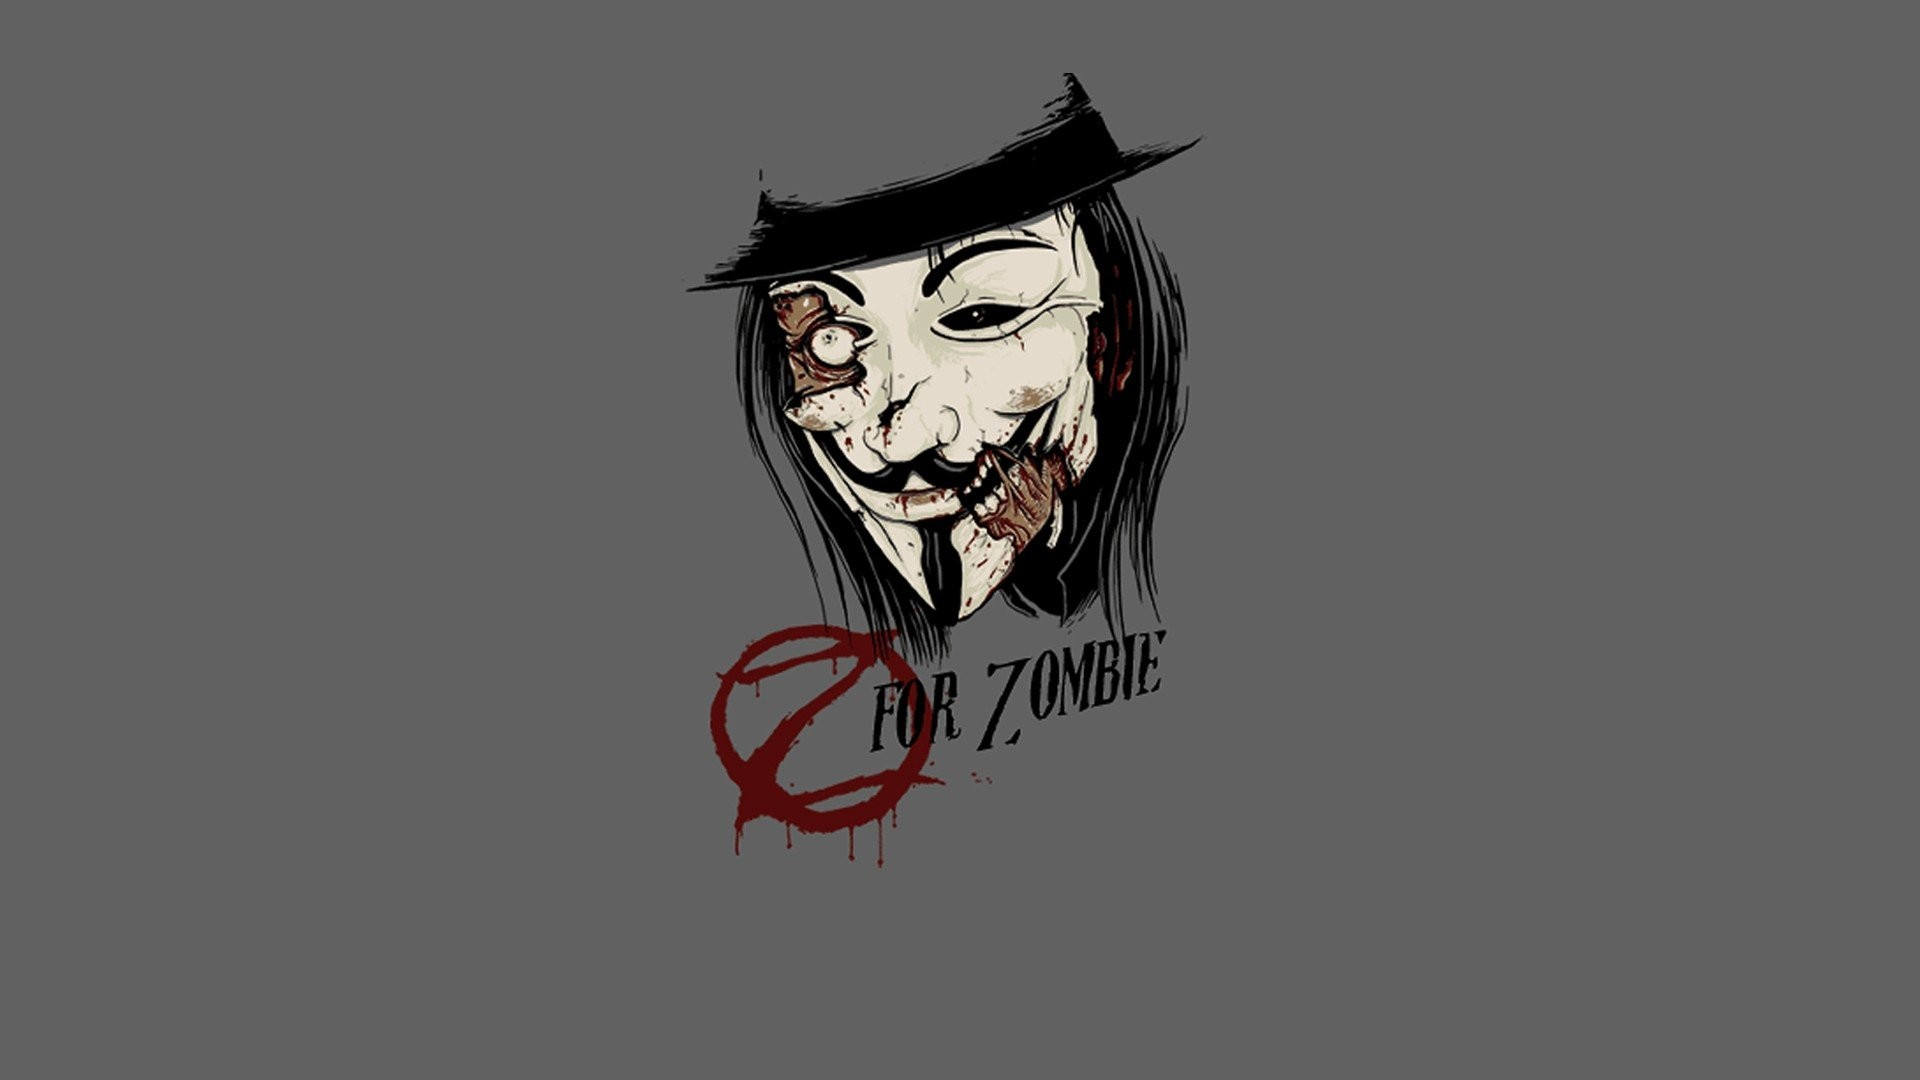 Res: 1920x1080, Minimalistic zombies funny Guy Fawkes artwork wallpaper |  |  260252 | WallpaperUP